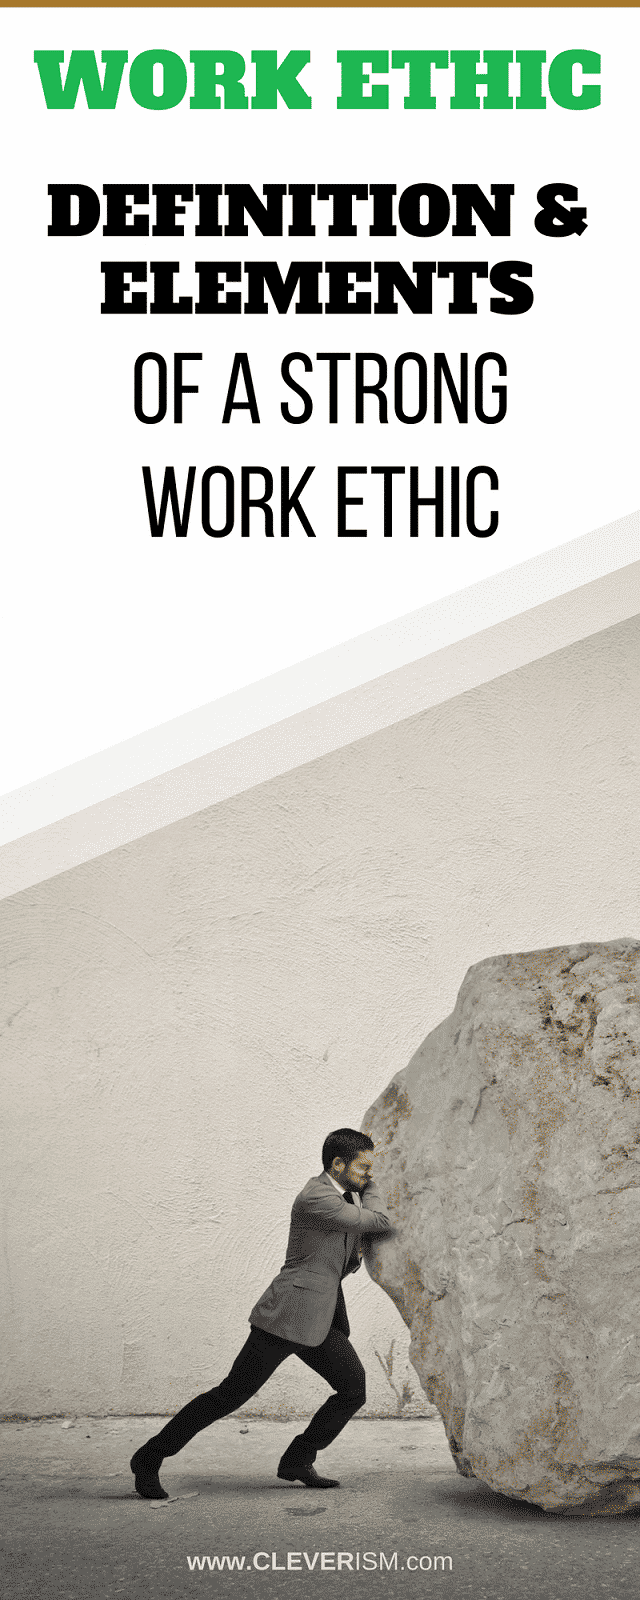 Work Ethic Definition & Elements of a Strong Work Ethic